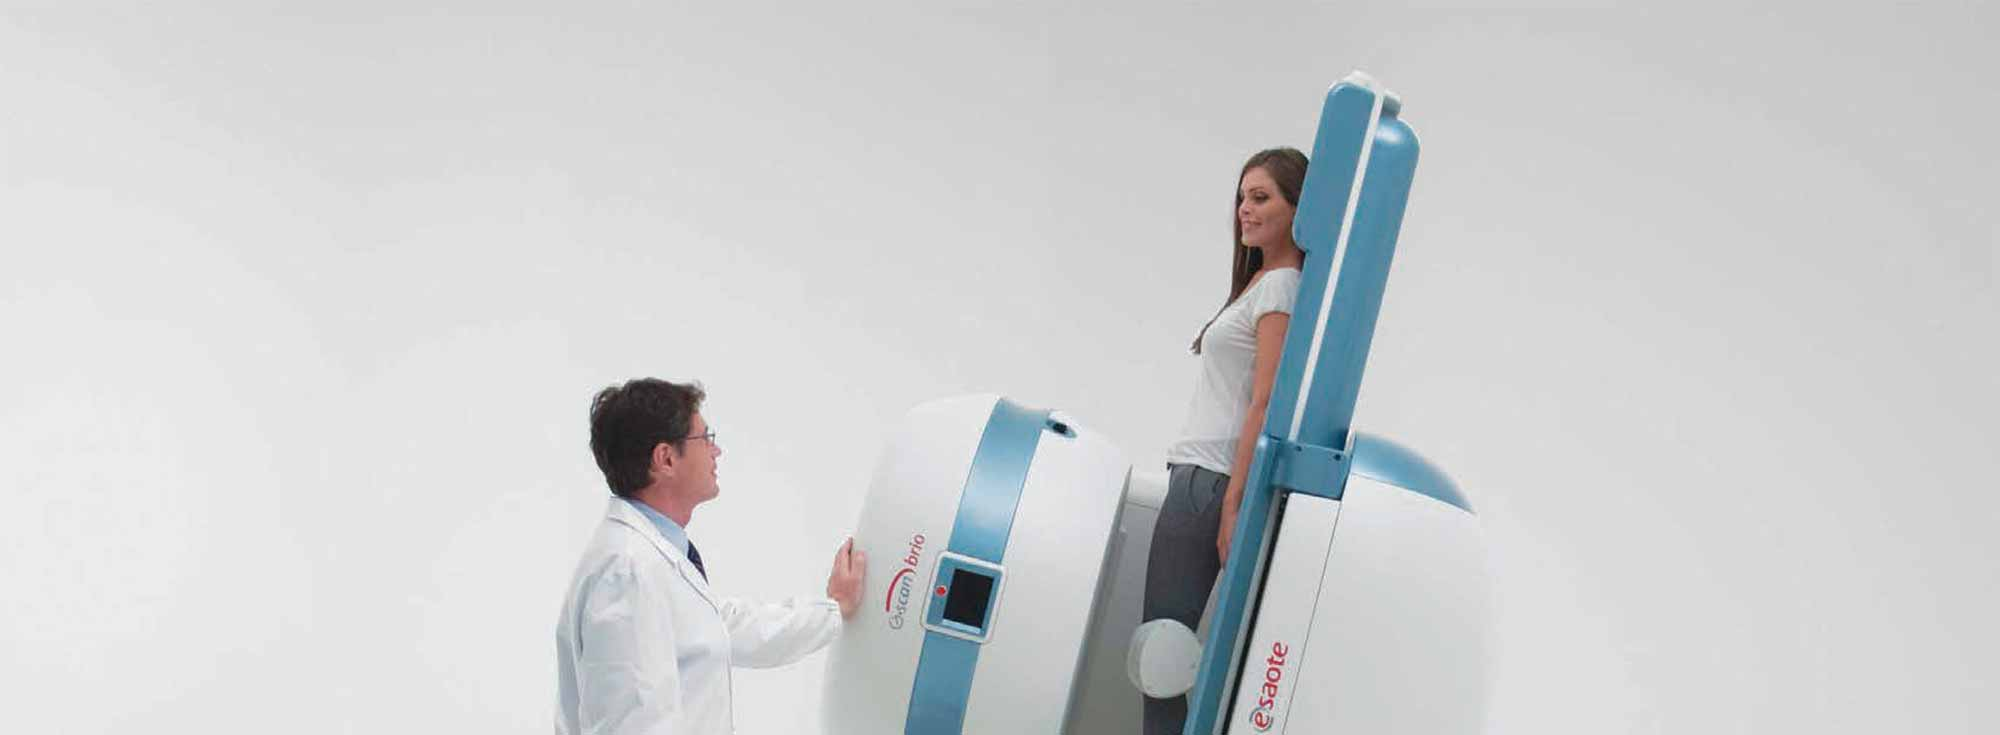 See why you should use Bayside Standing MRI and how you can make an appointment